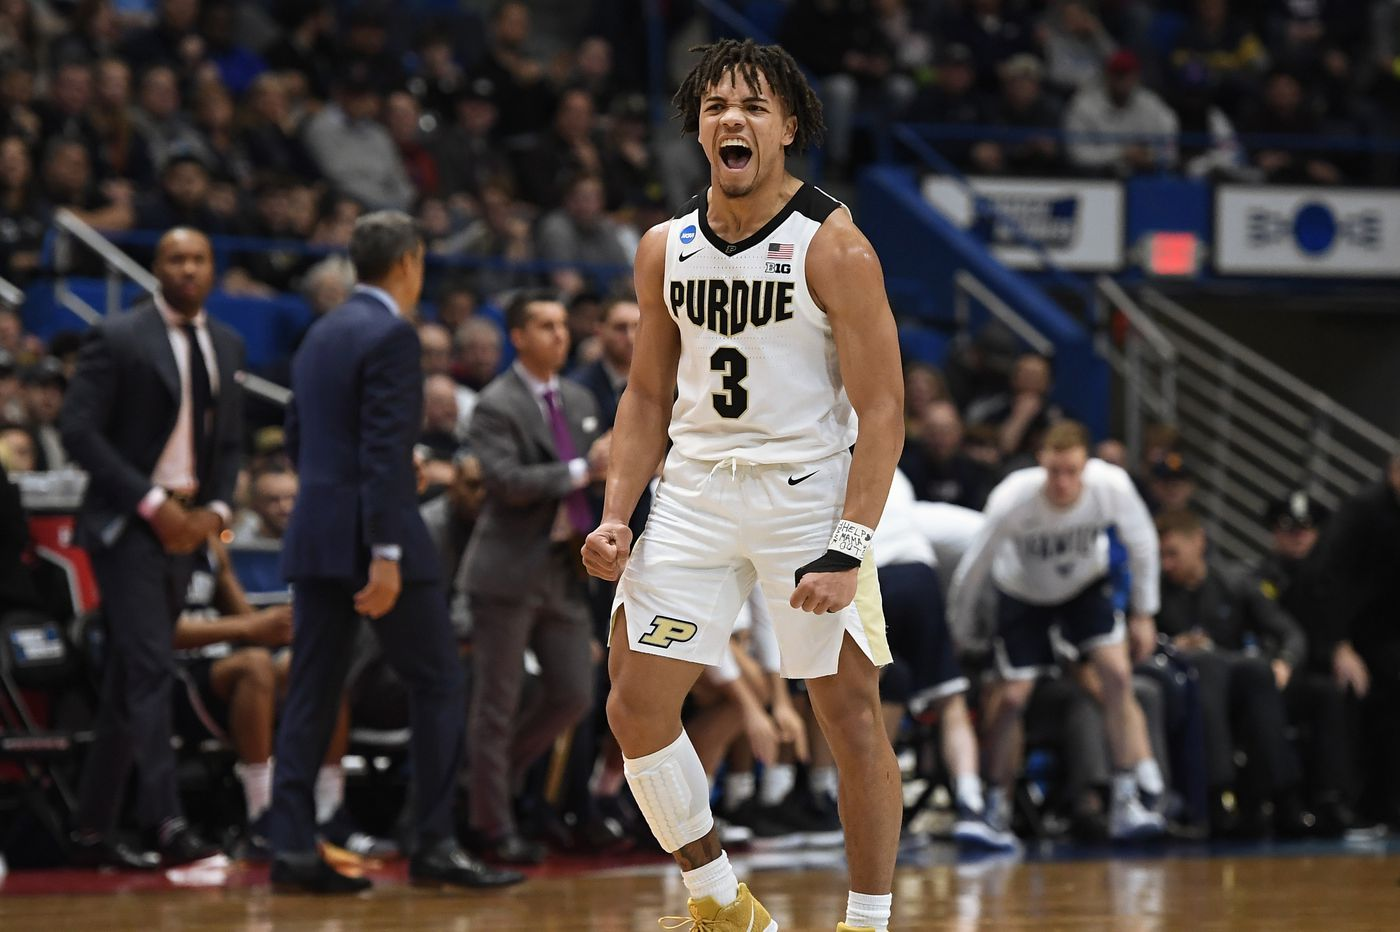 NBA draft: Purdue guard Carsen Edwards could give Sixers needed offense off bench